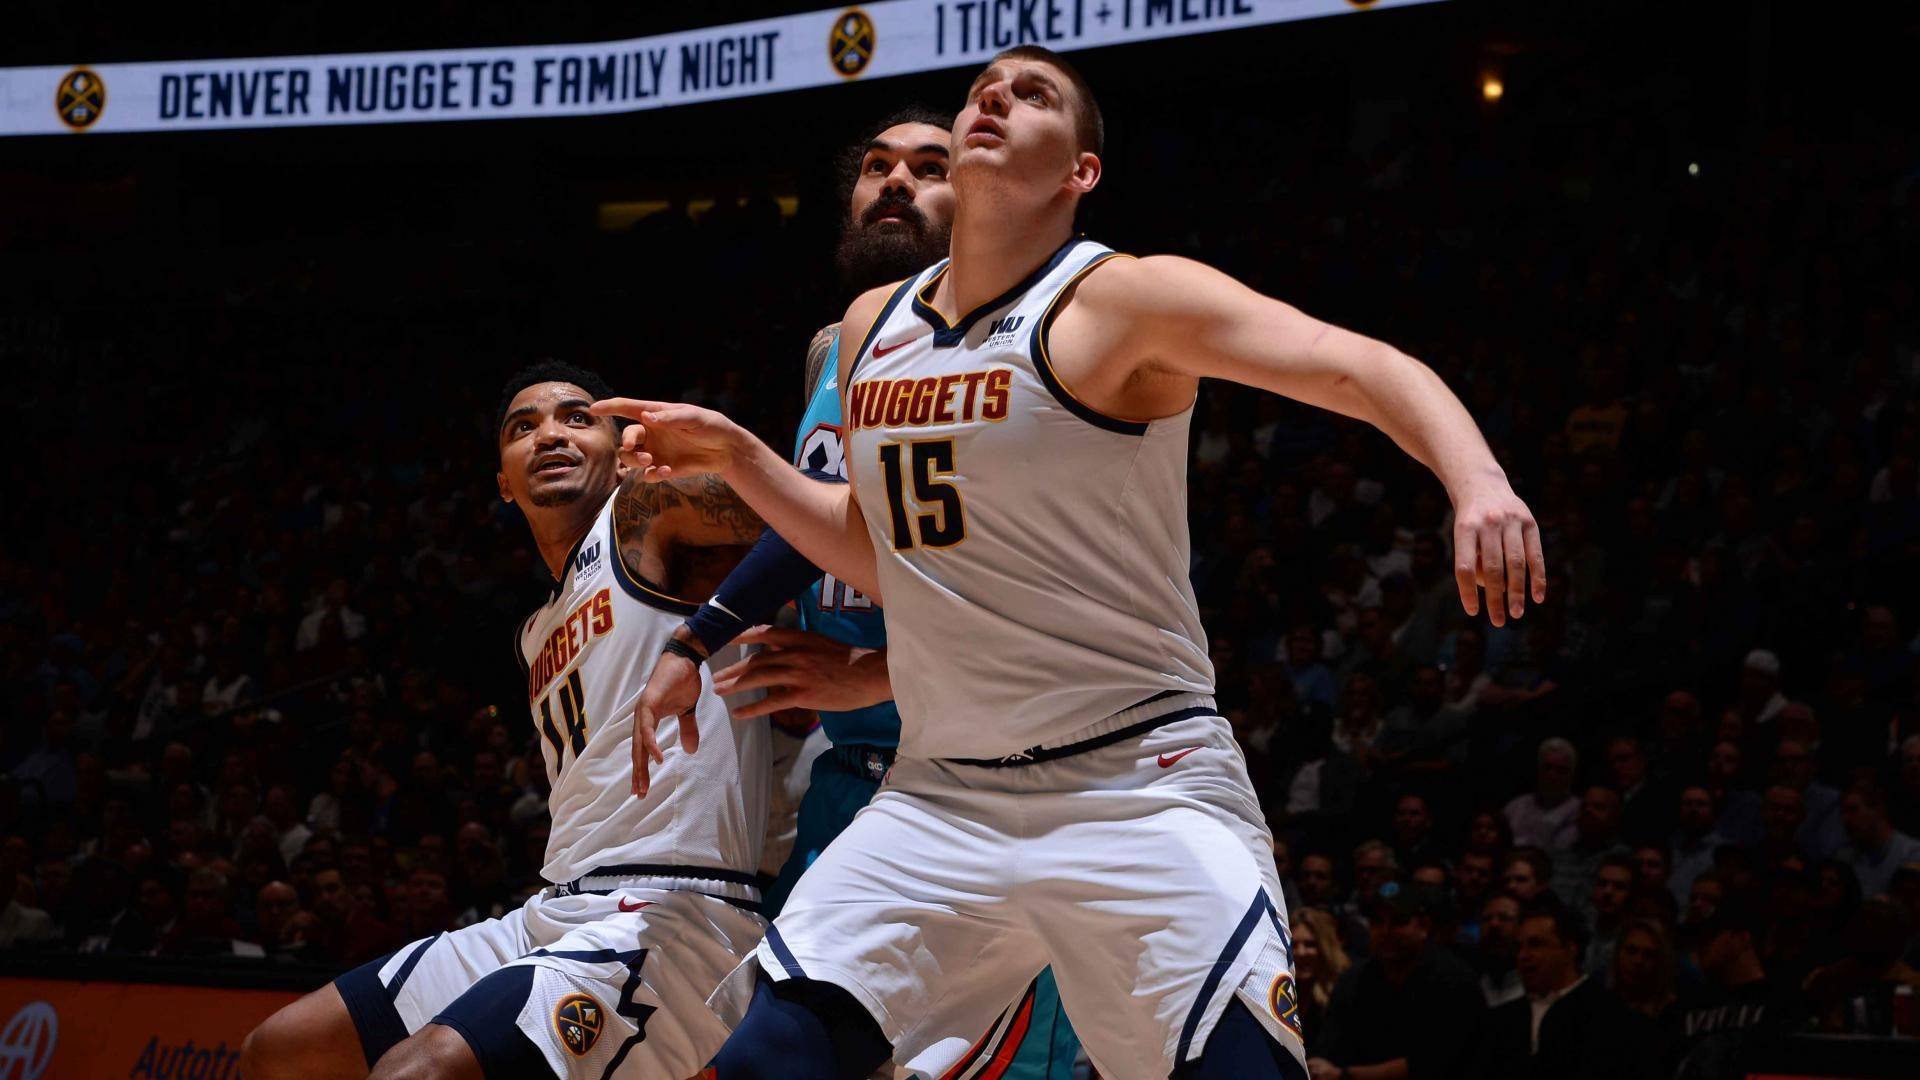 GAME RECAP: Nuggets 121, Thunder 112